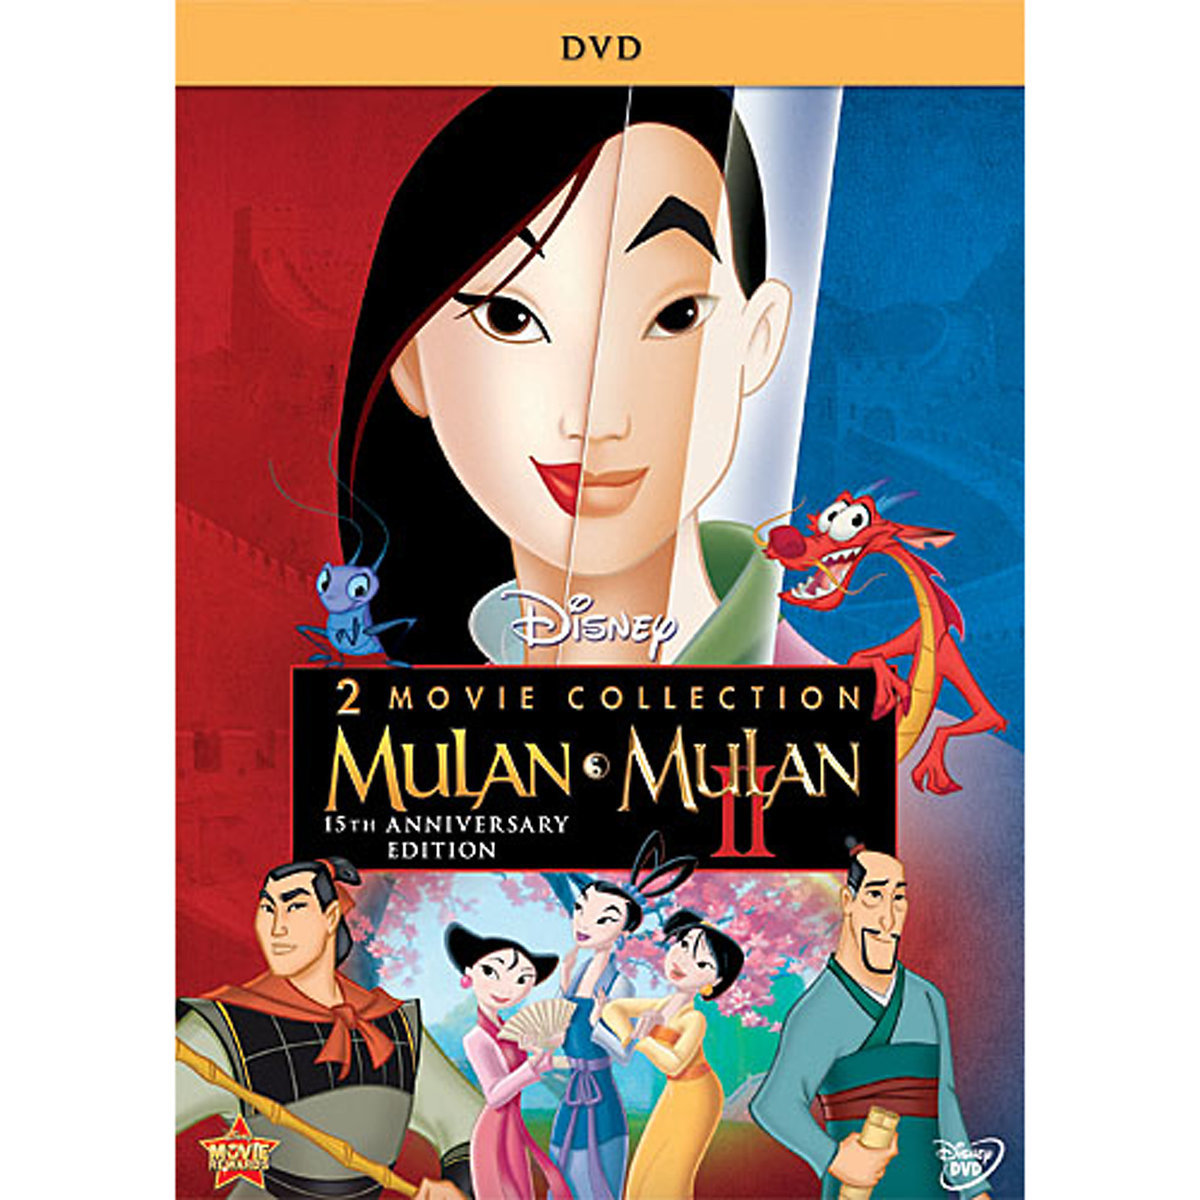 Mulan / Mulan II (2 Movie Collection) (15th Anniversary Edition) (DVD)